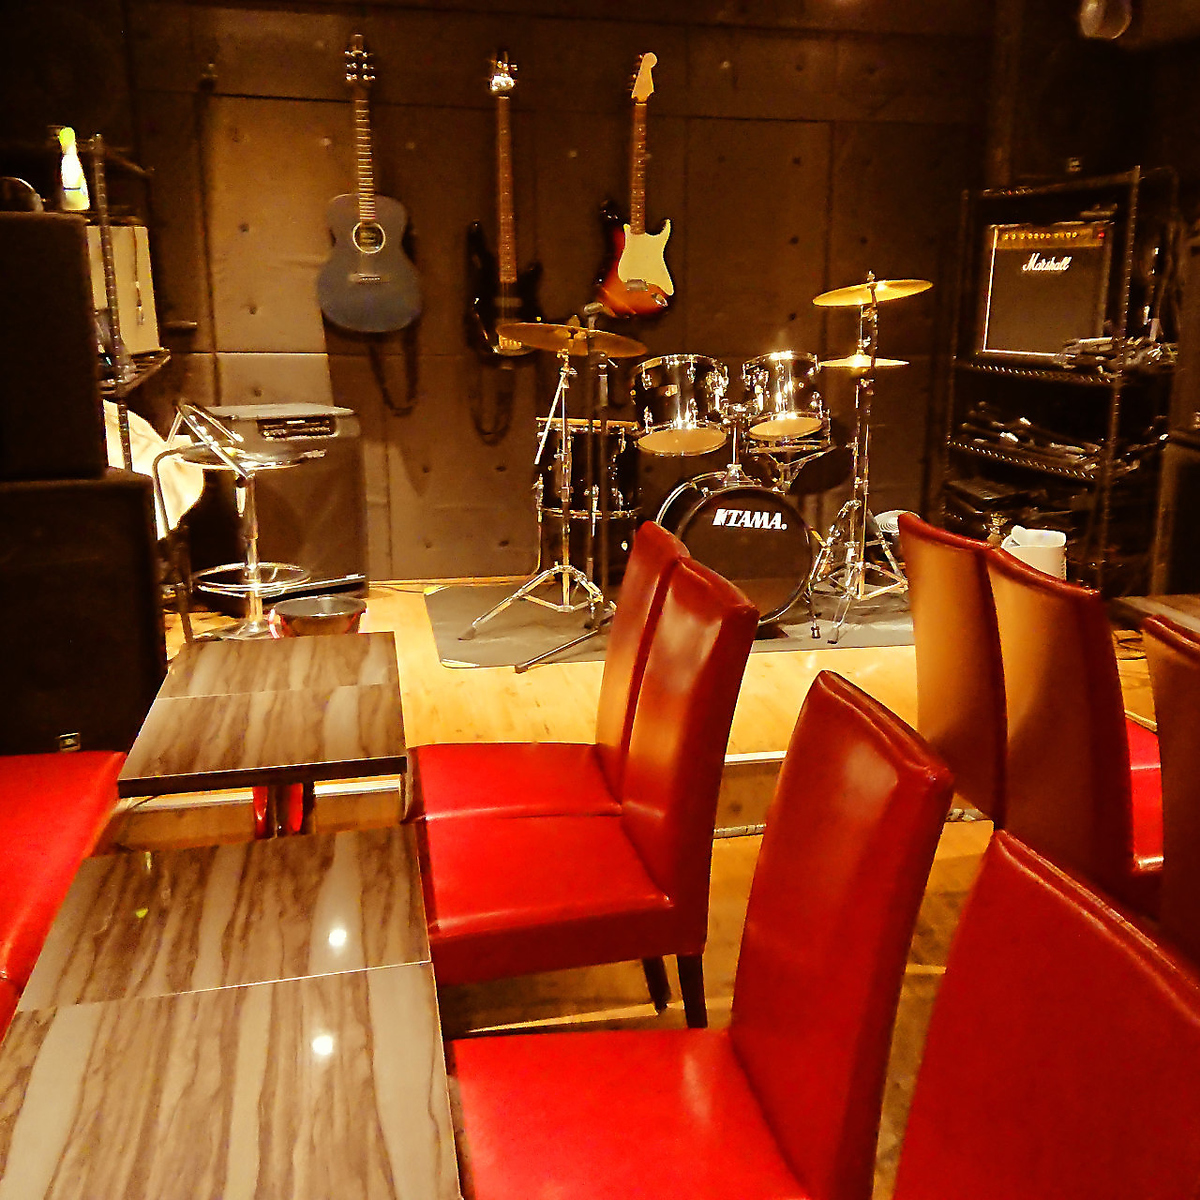 Chic atmosphere based on red.Lending out instruments ◎